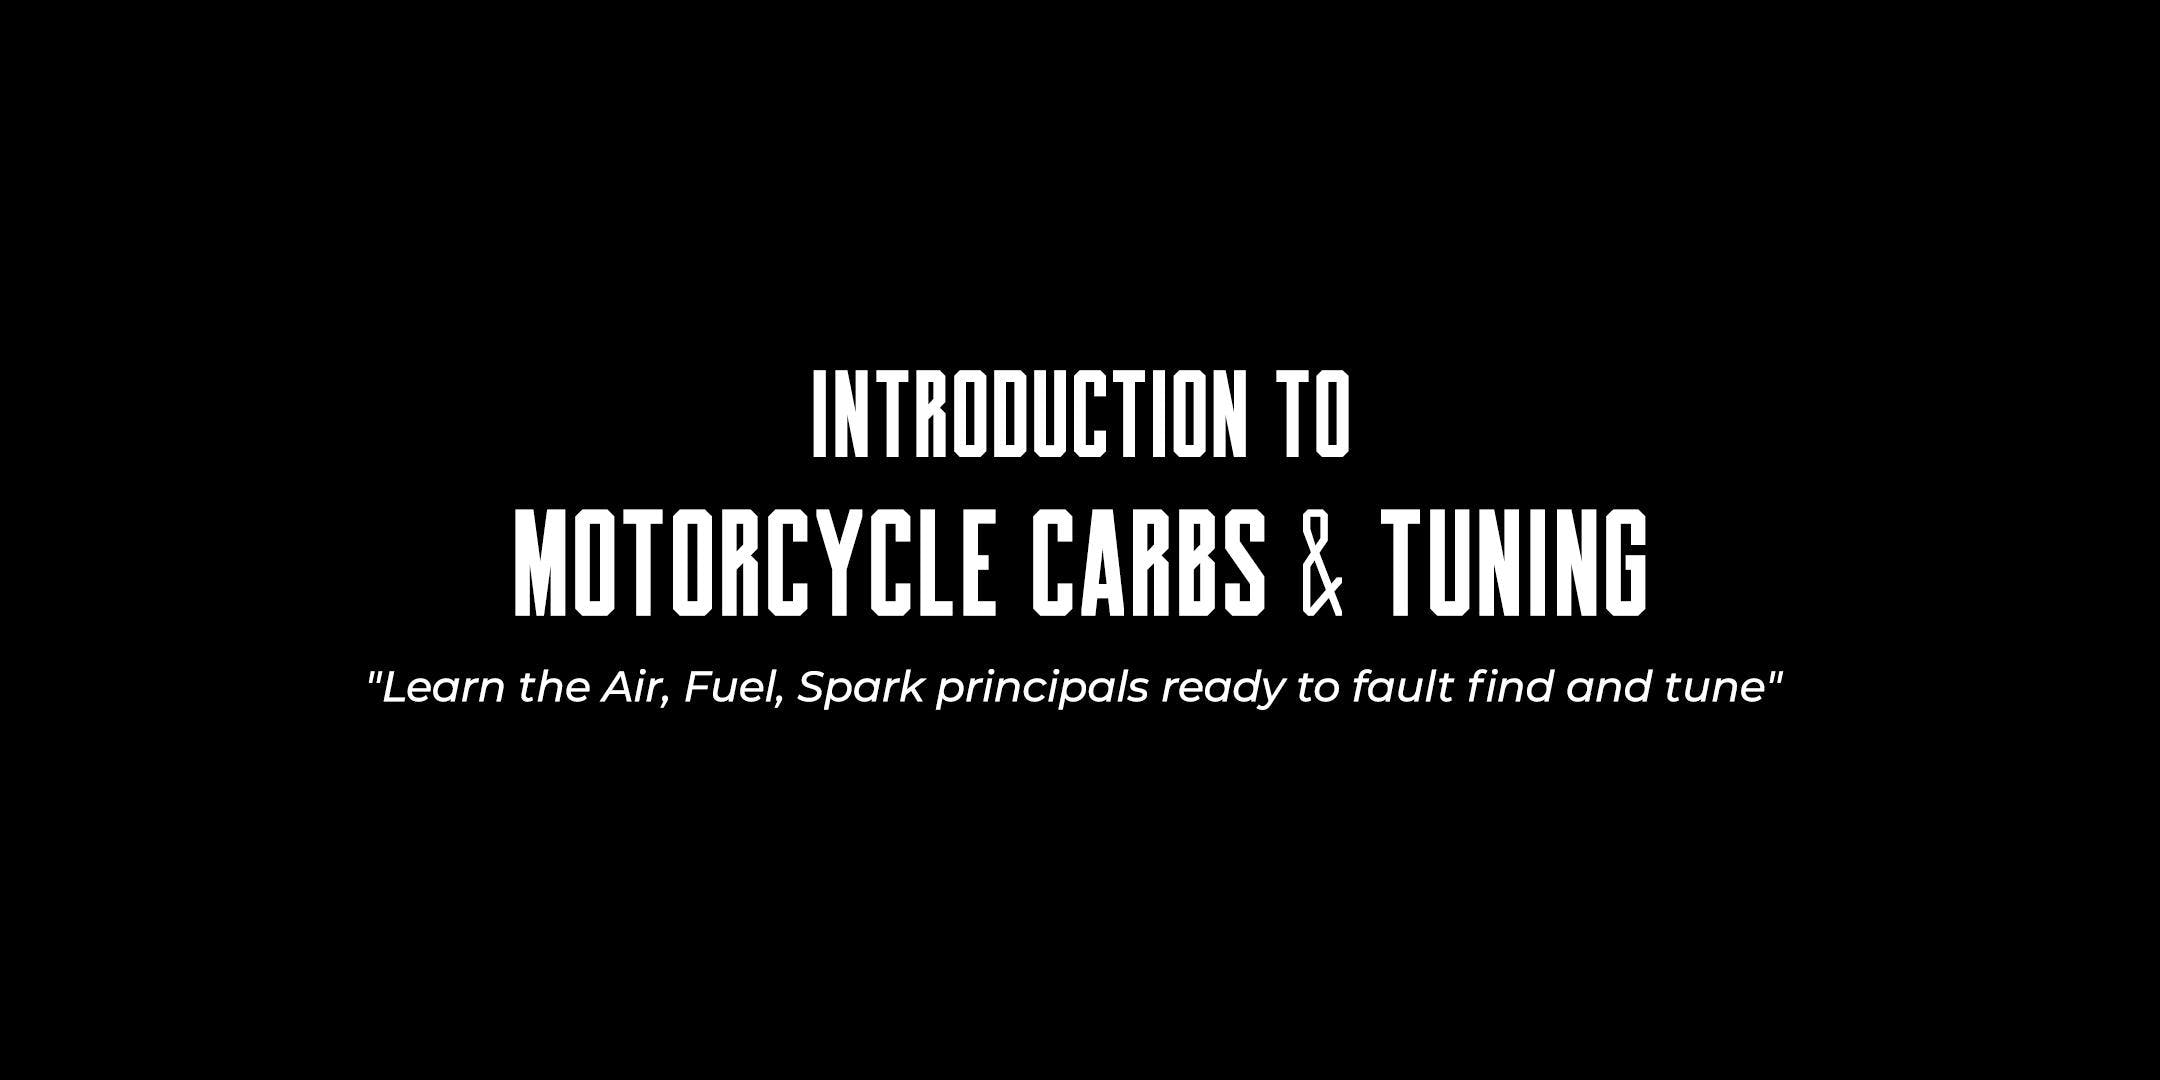 Introduction to Motorcycle Carbs & Tuning